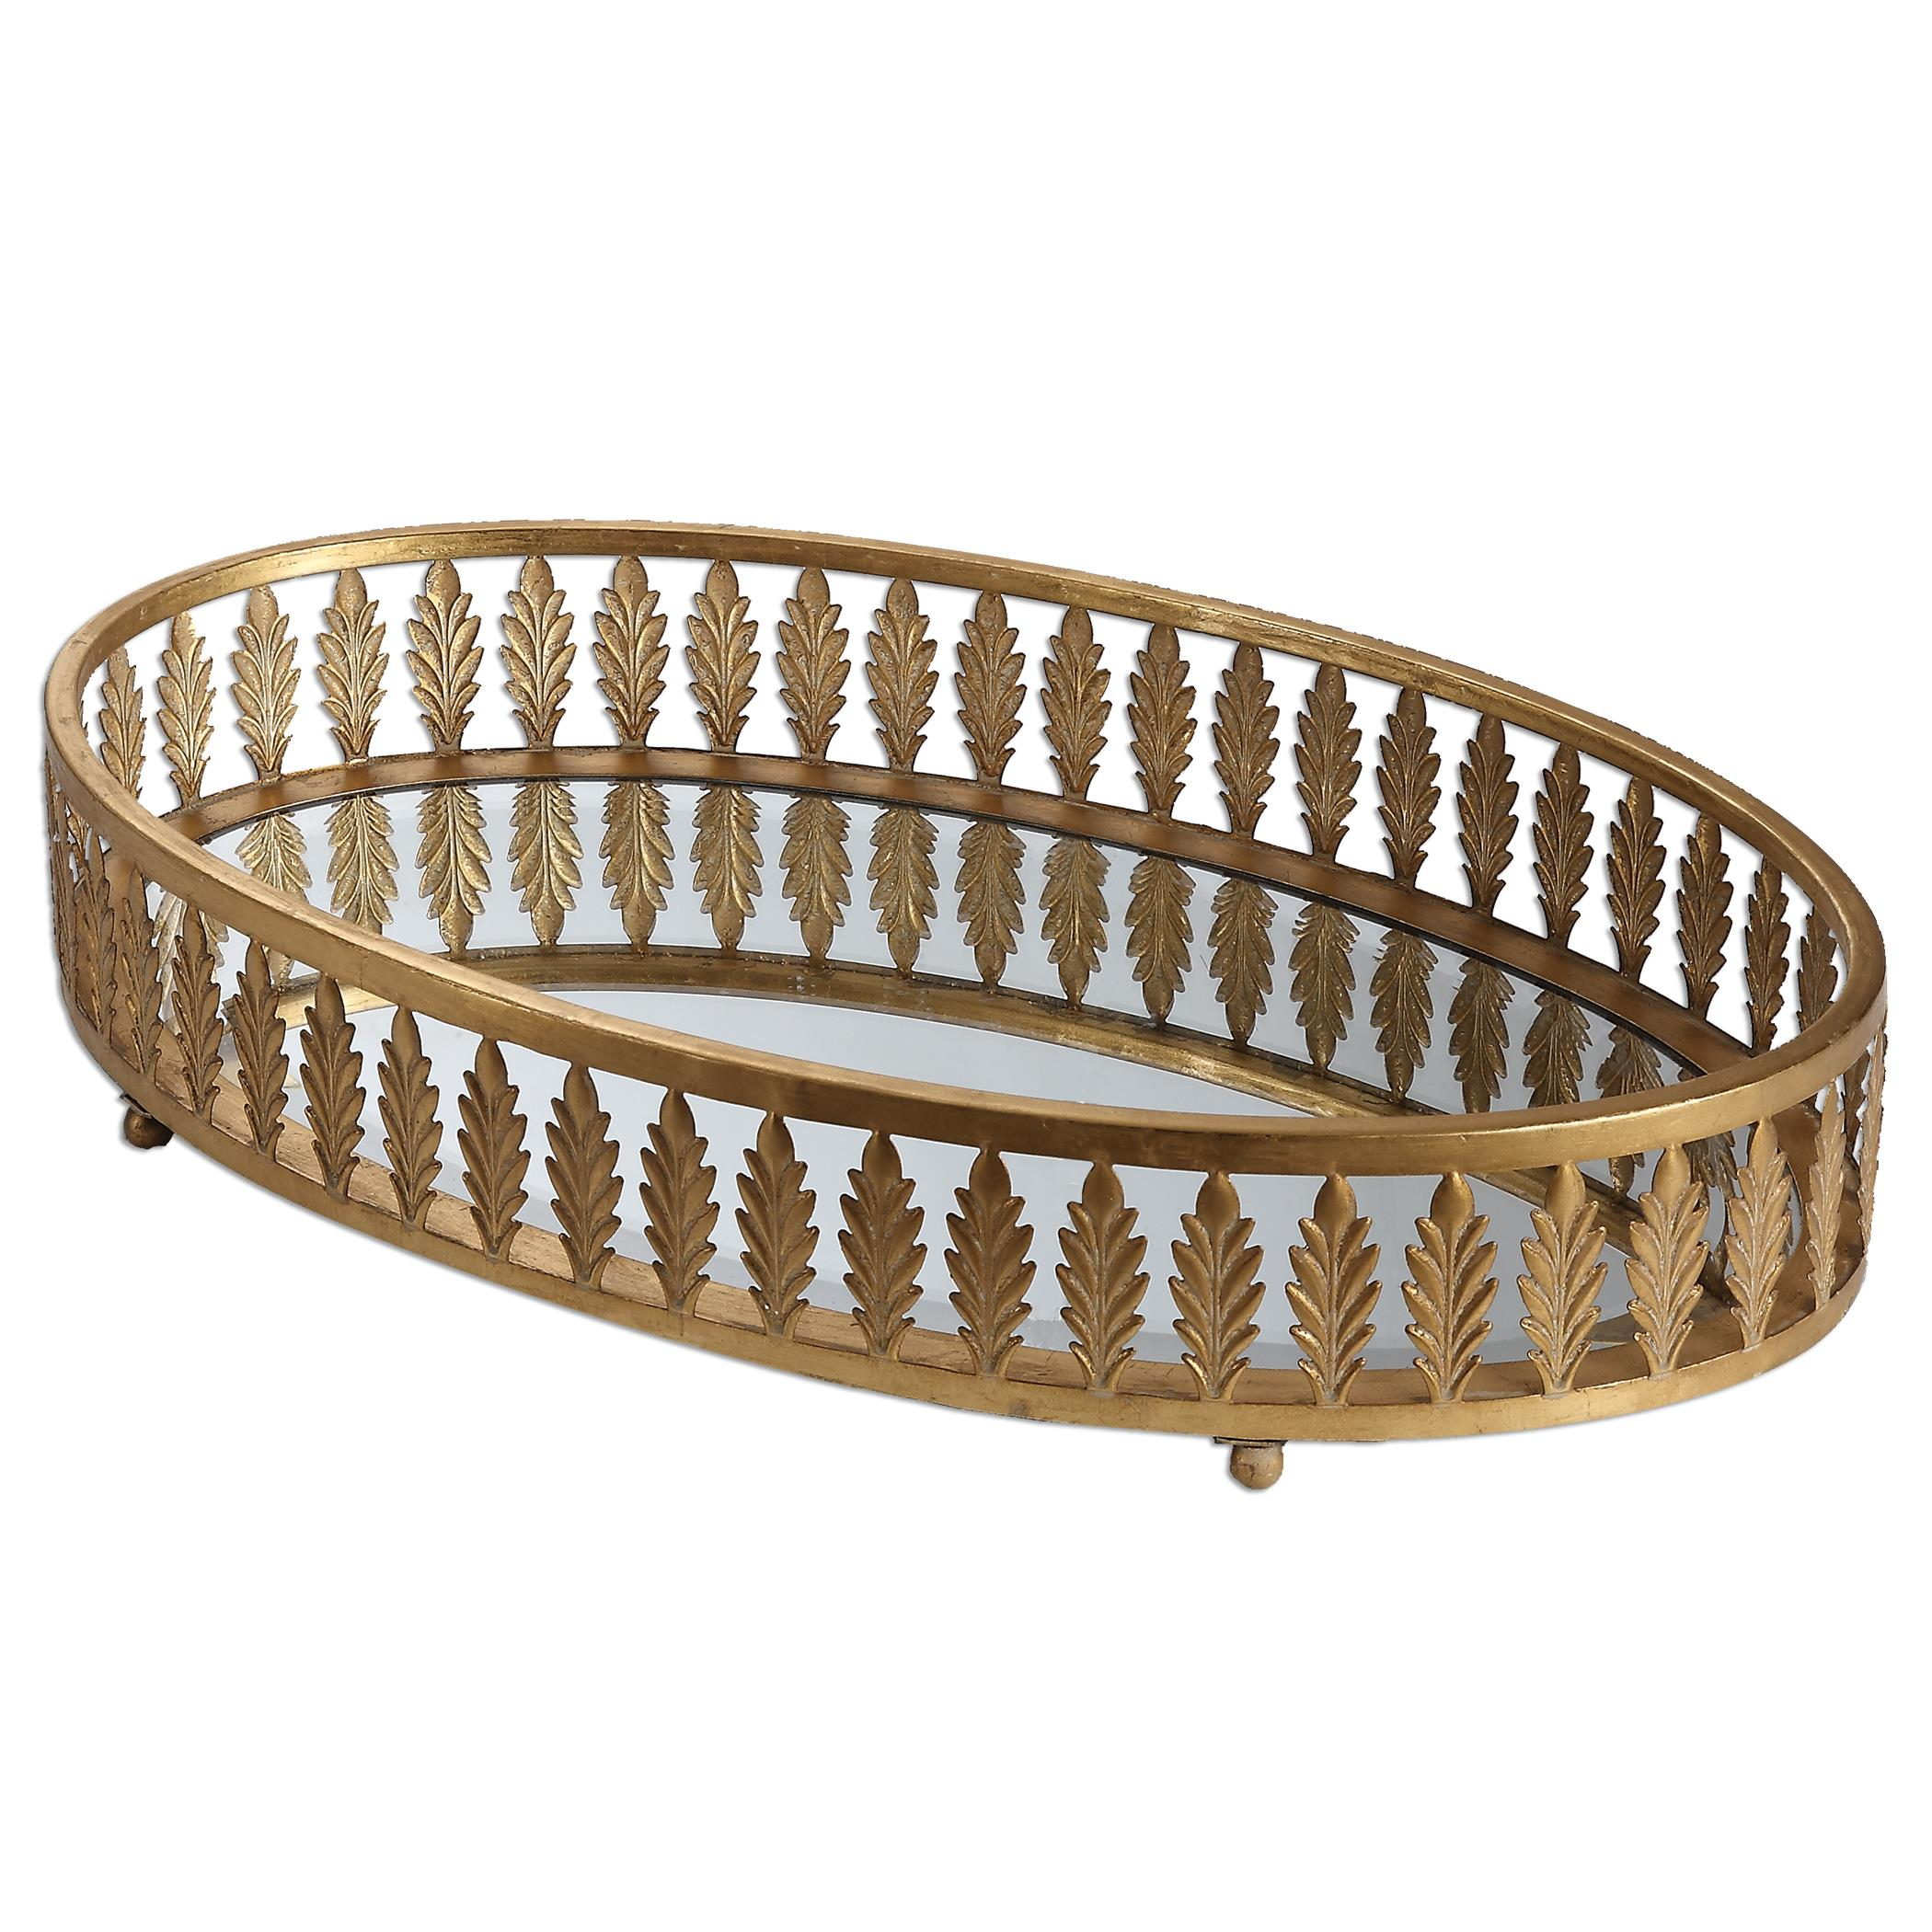 Uttermost Accessories Bevan Gold Oval Tray - Item Number: 19991